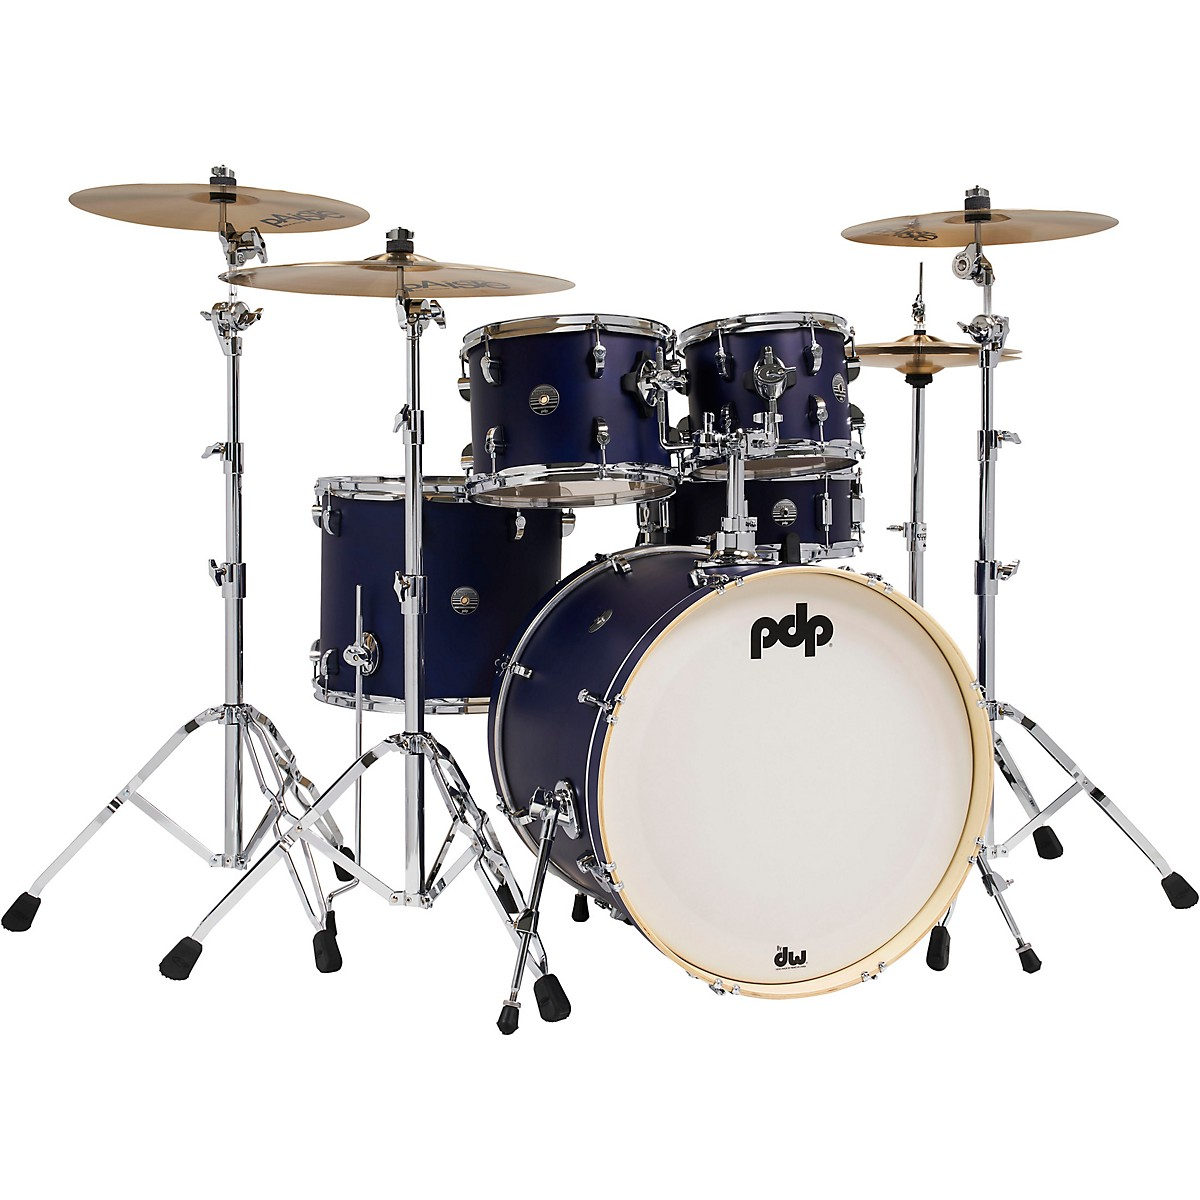 PDP by DW Spectrum Series 5-Piece Shell Pack with 22 in. Bass Drum